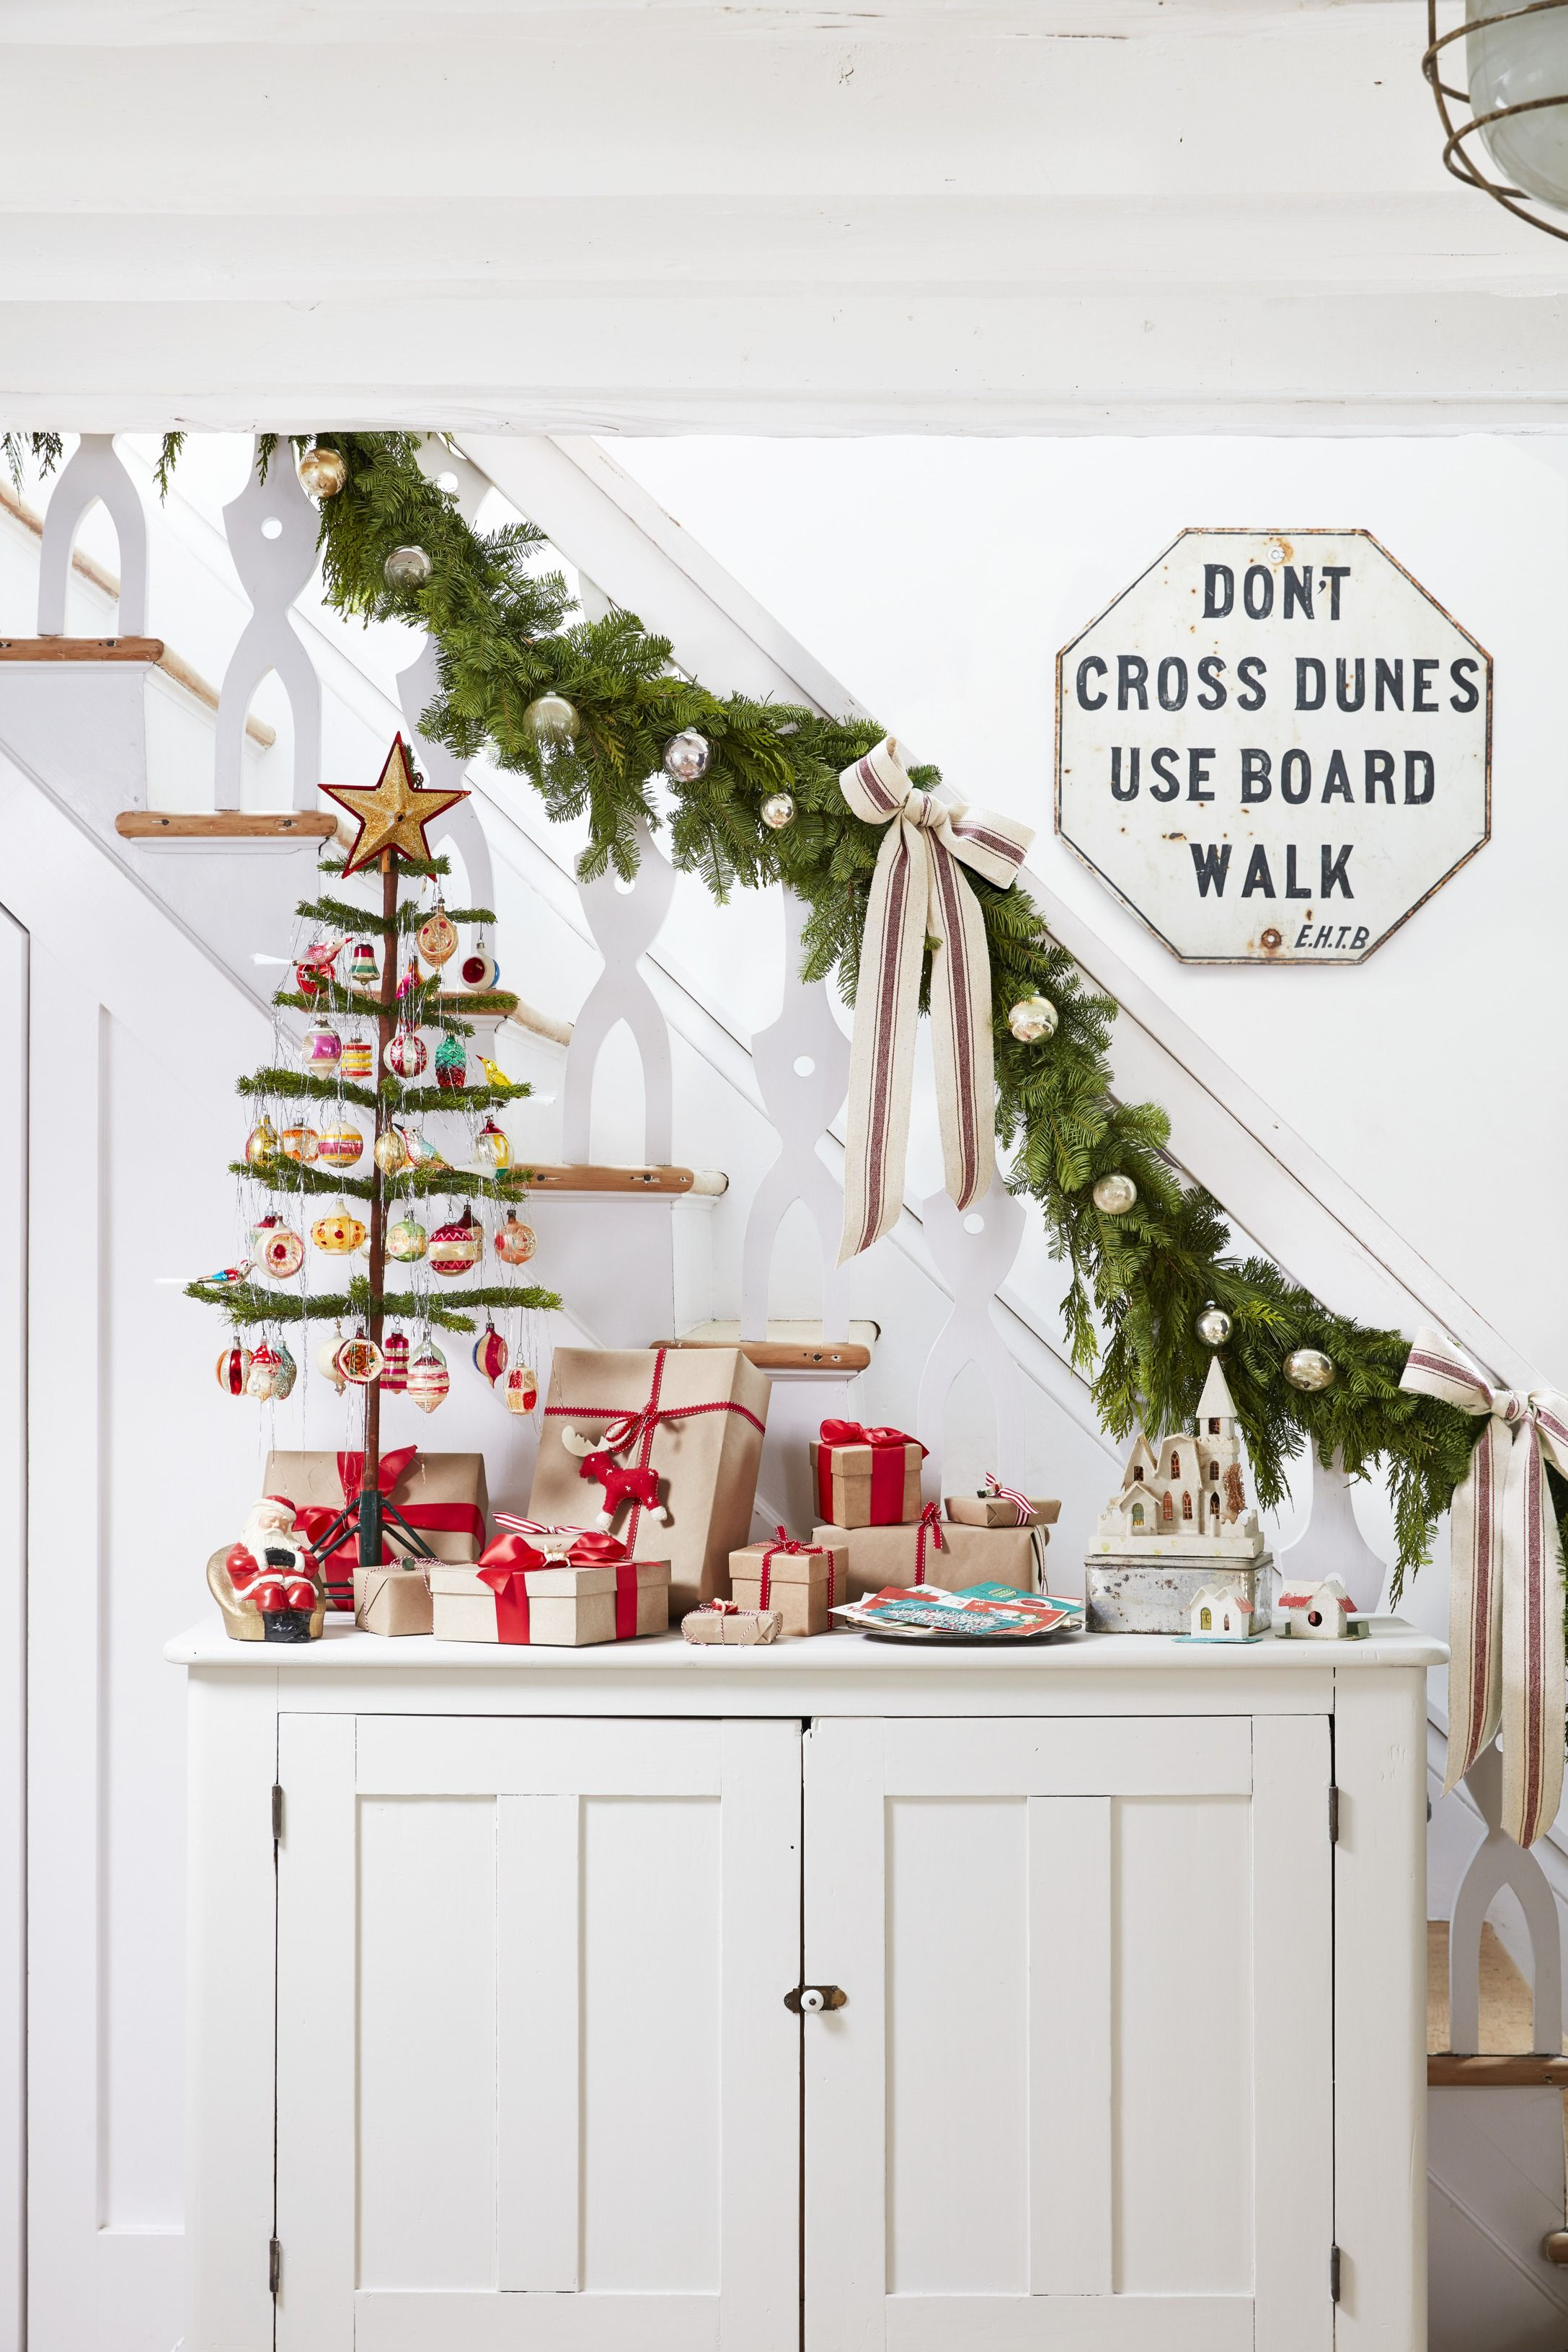 24 Fun Family Christmas Party Ideas - Holiday Party Food and Decor